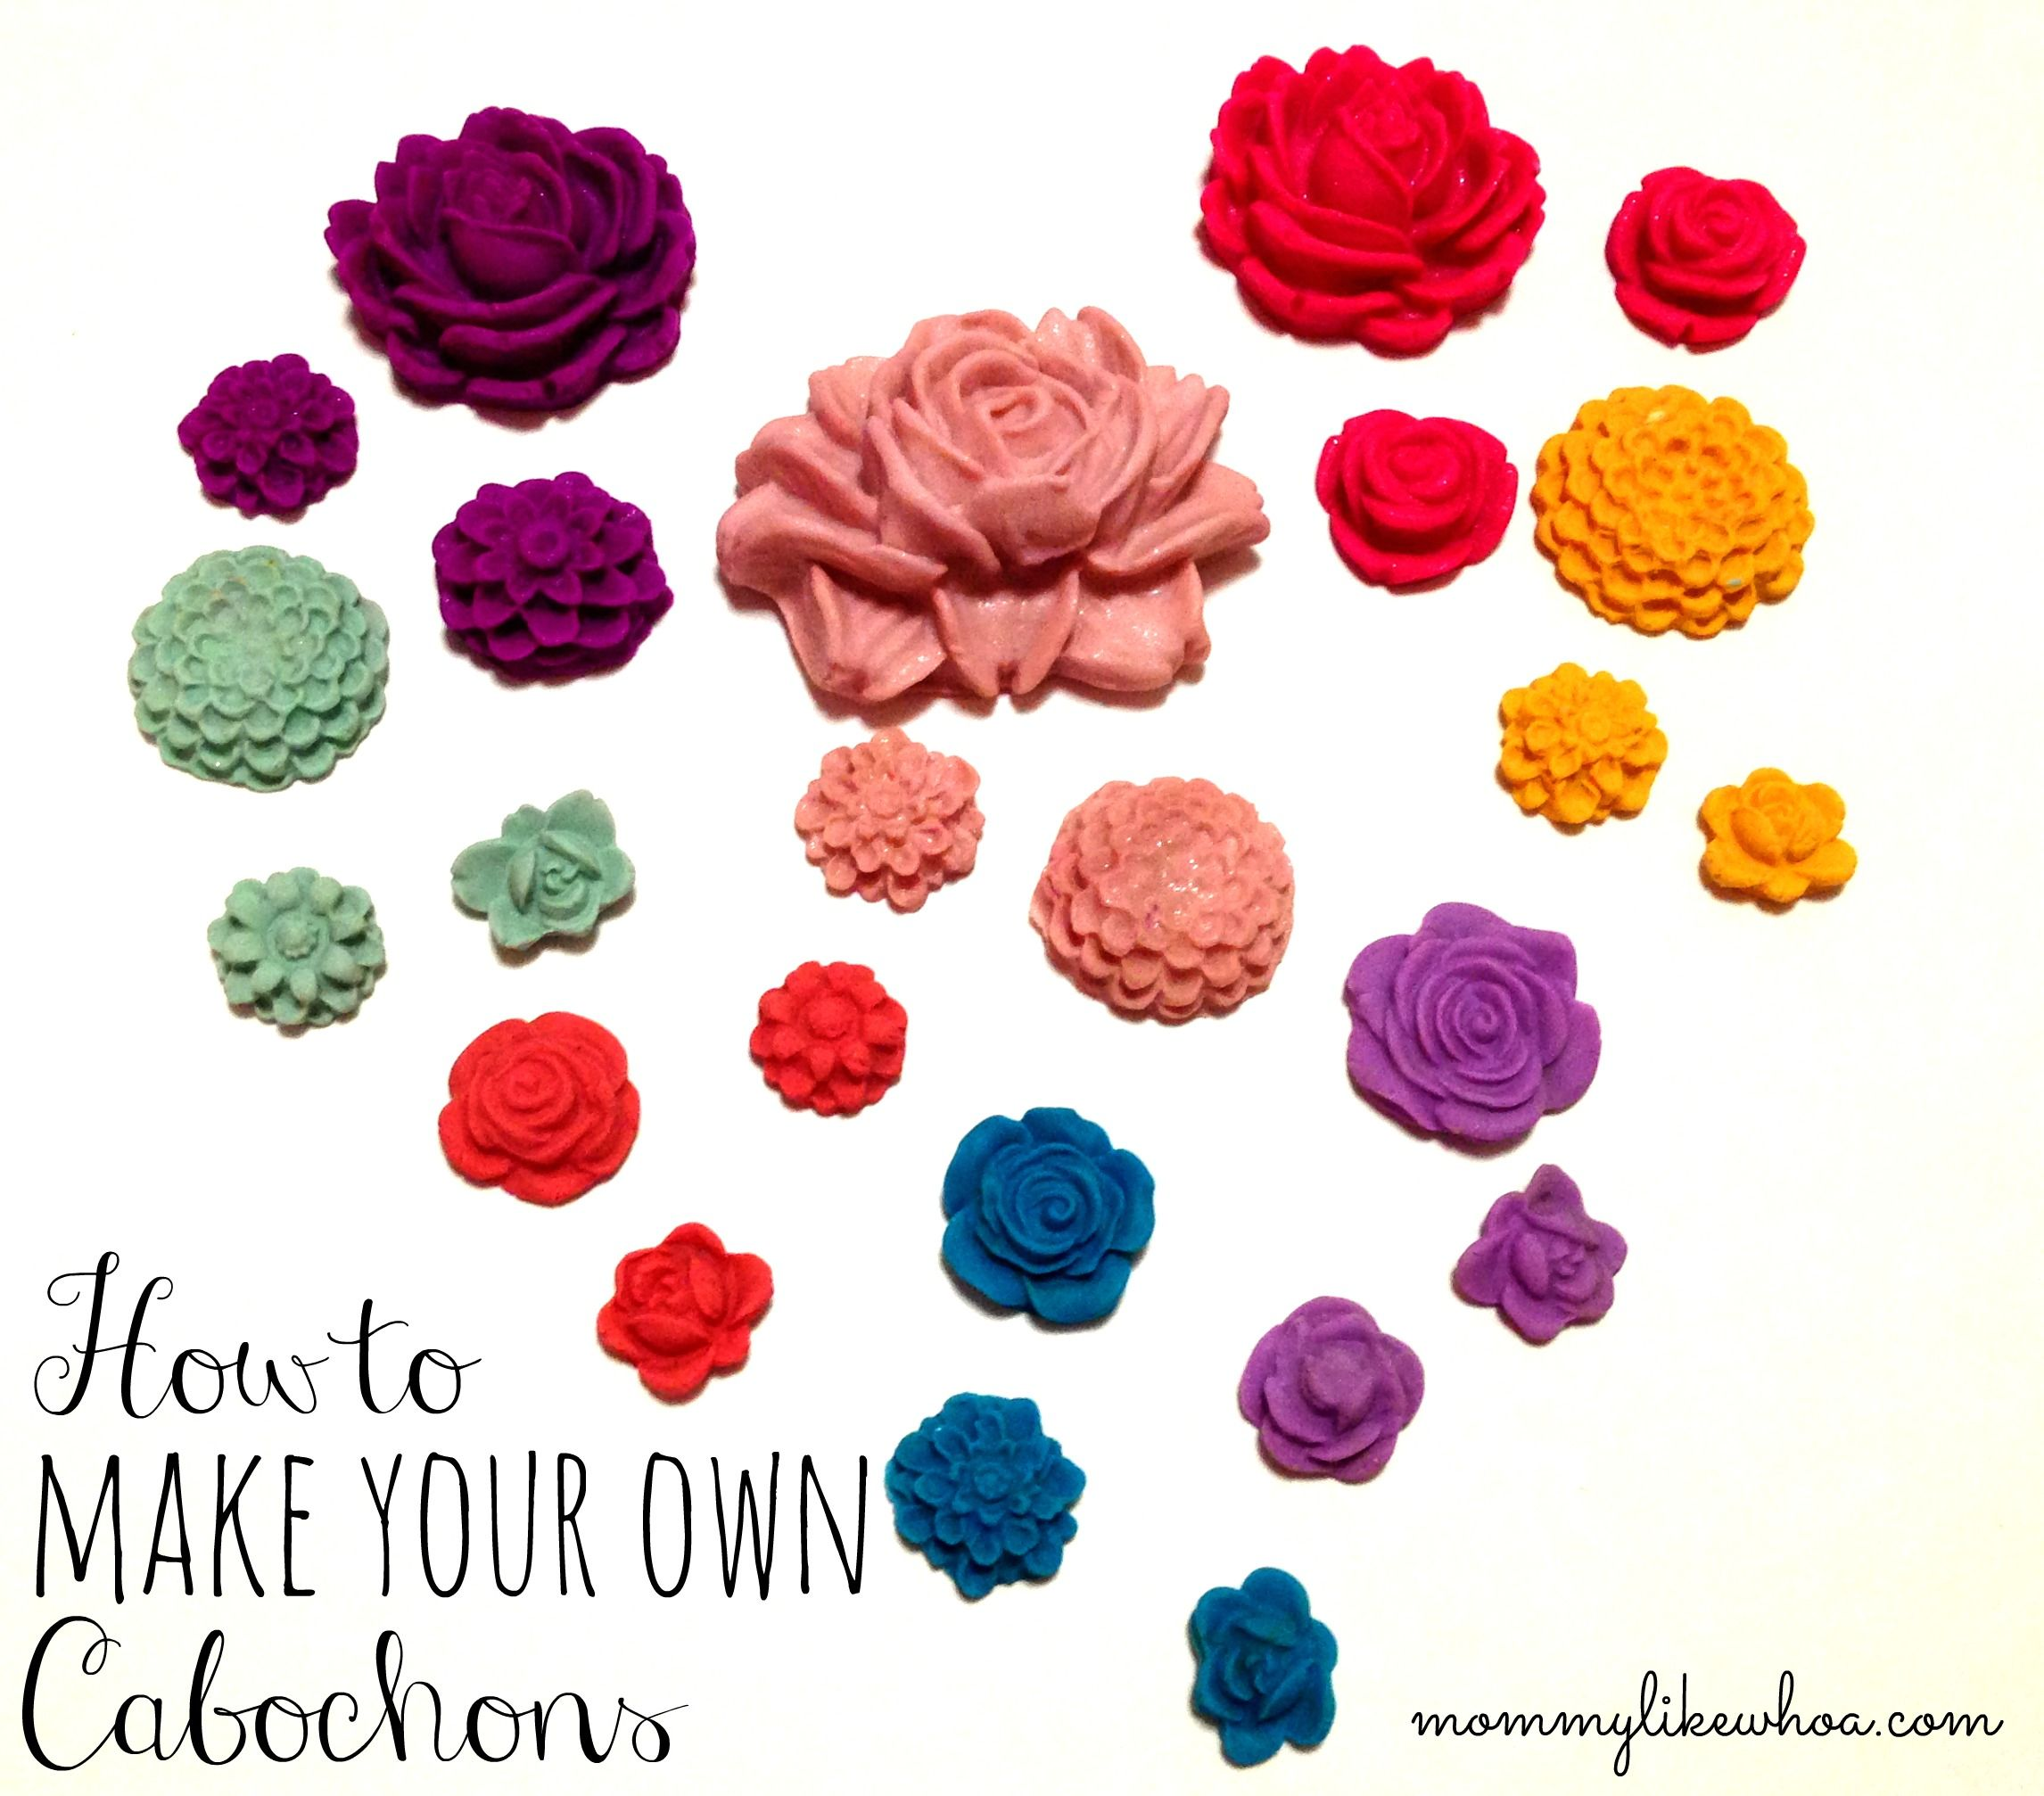 How To Make Your Own Cabochons